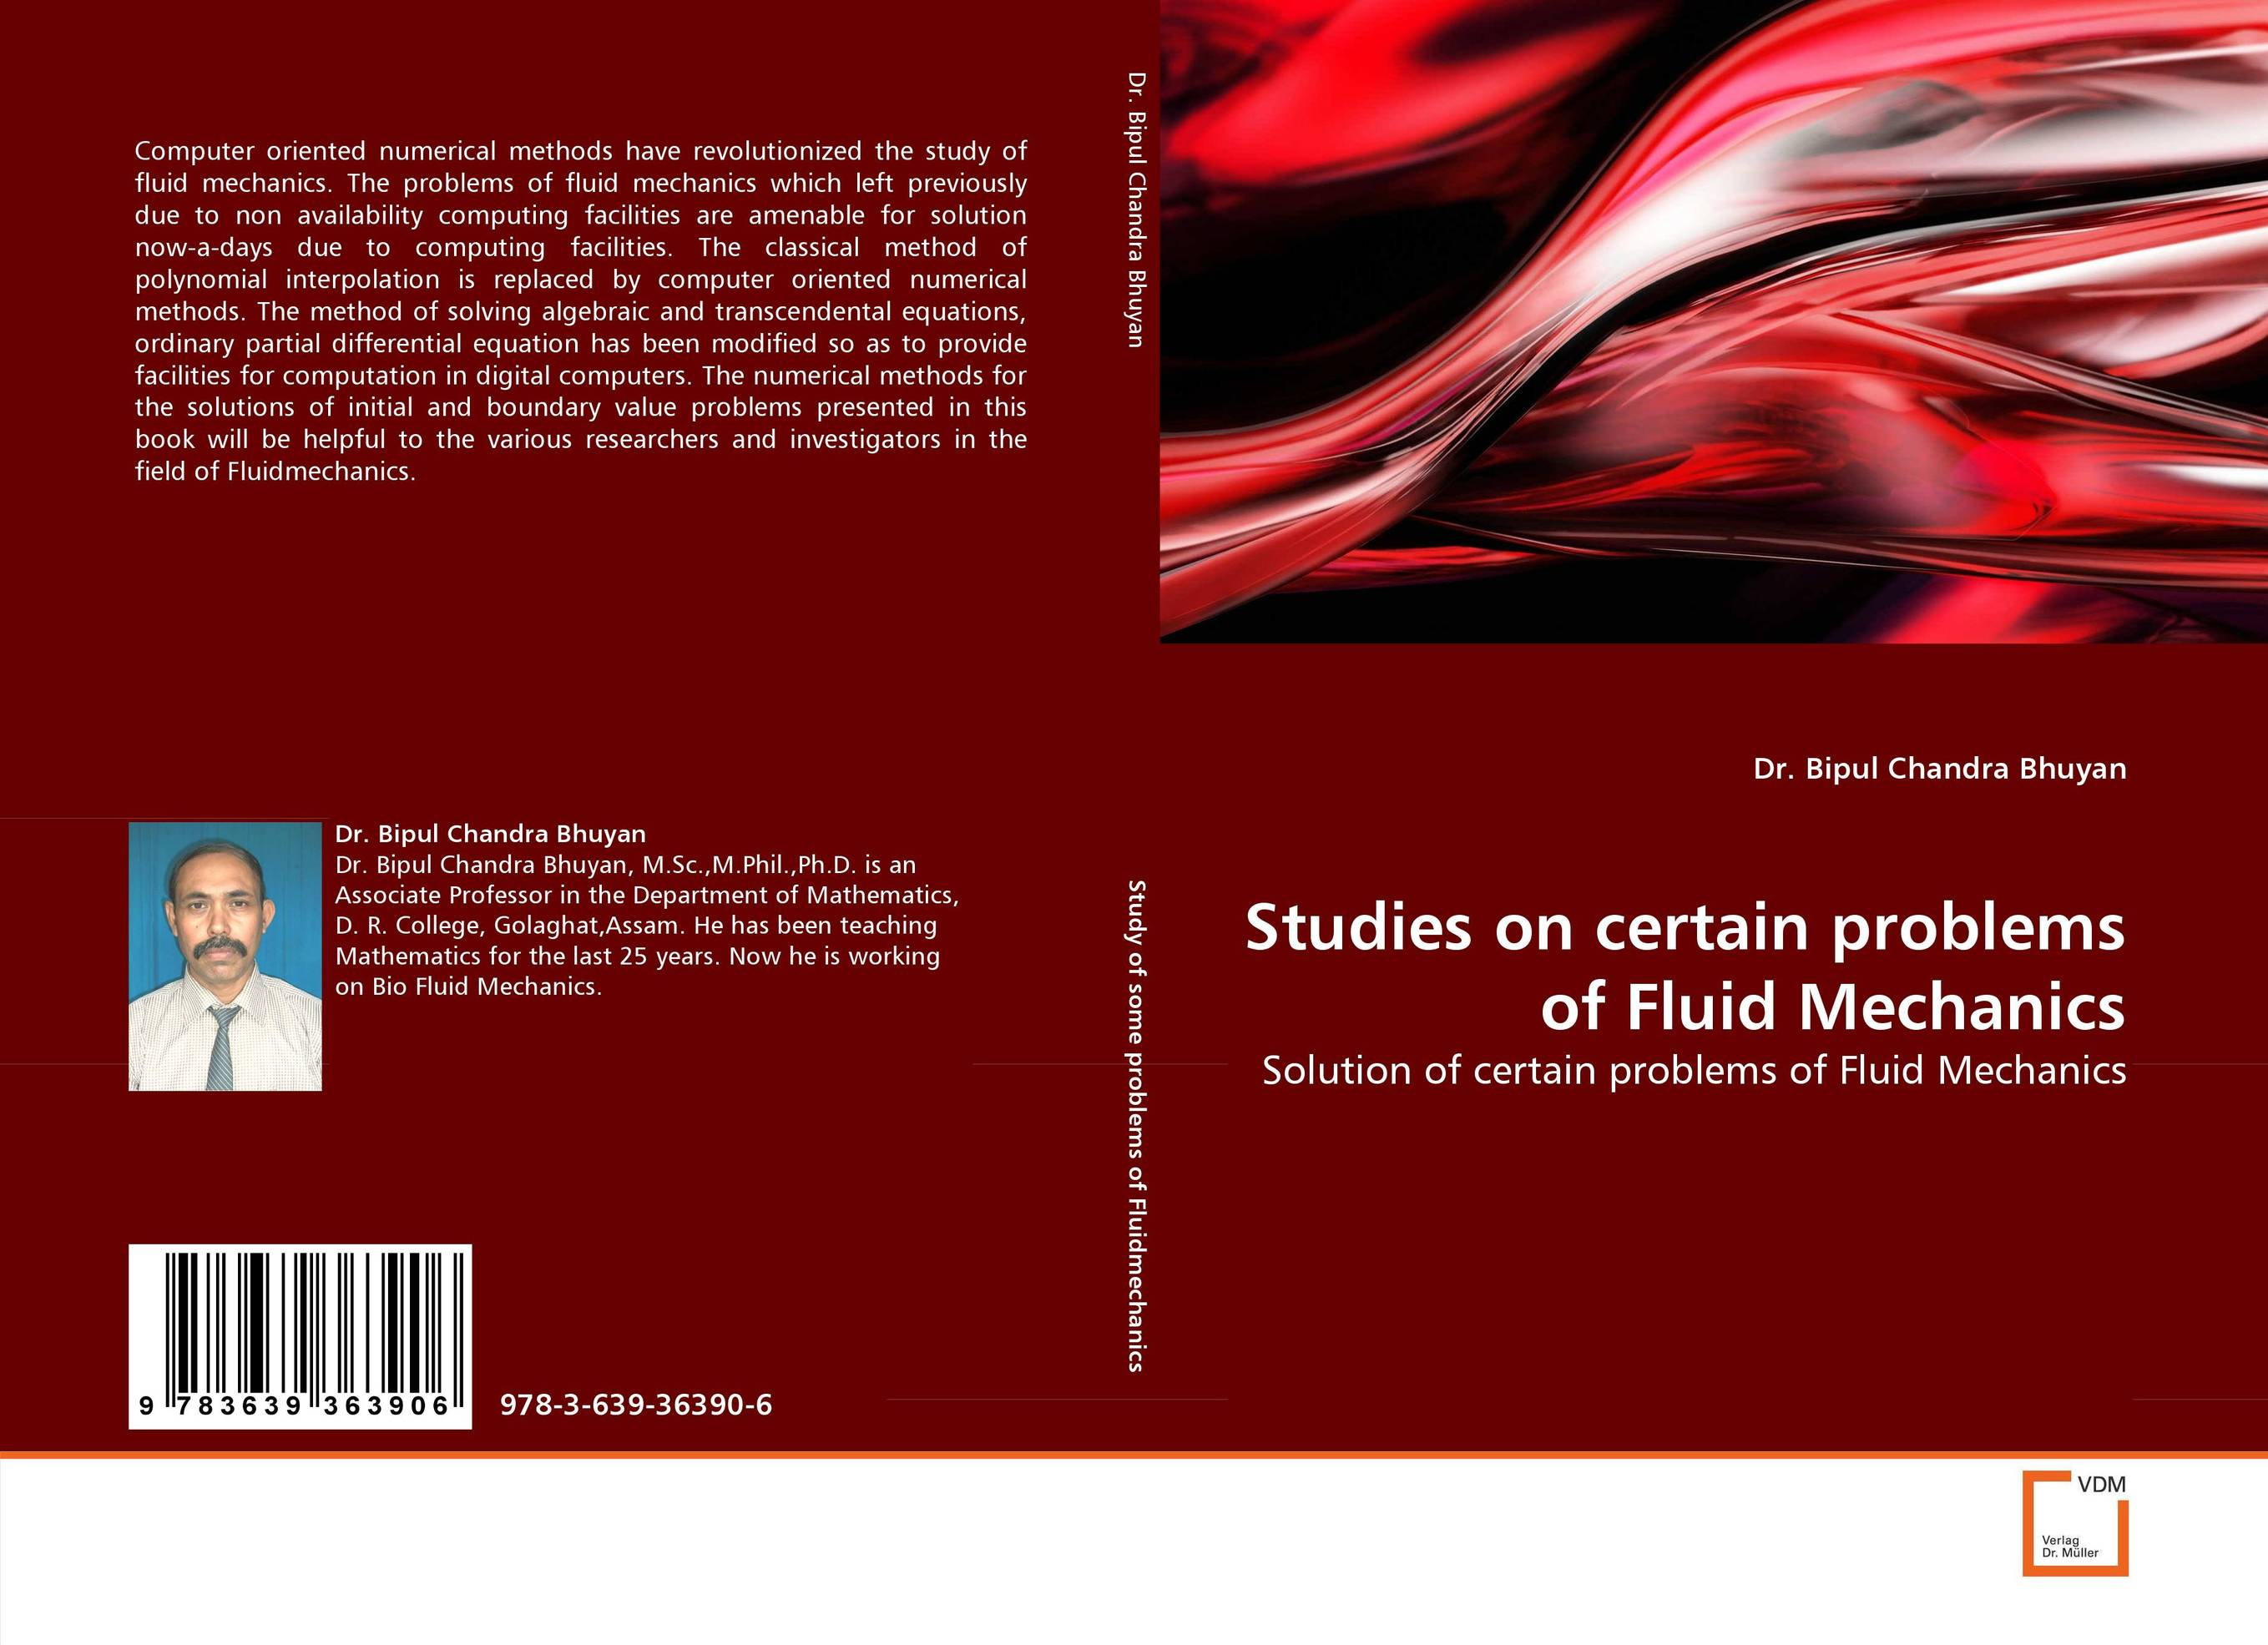 Studies on certain problems of Fluid Mechanics numerical study of dynamic relaxation methods